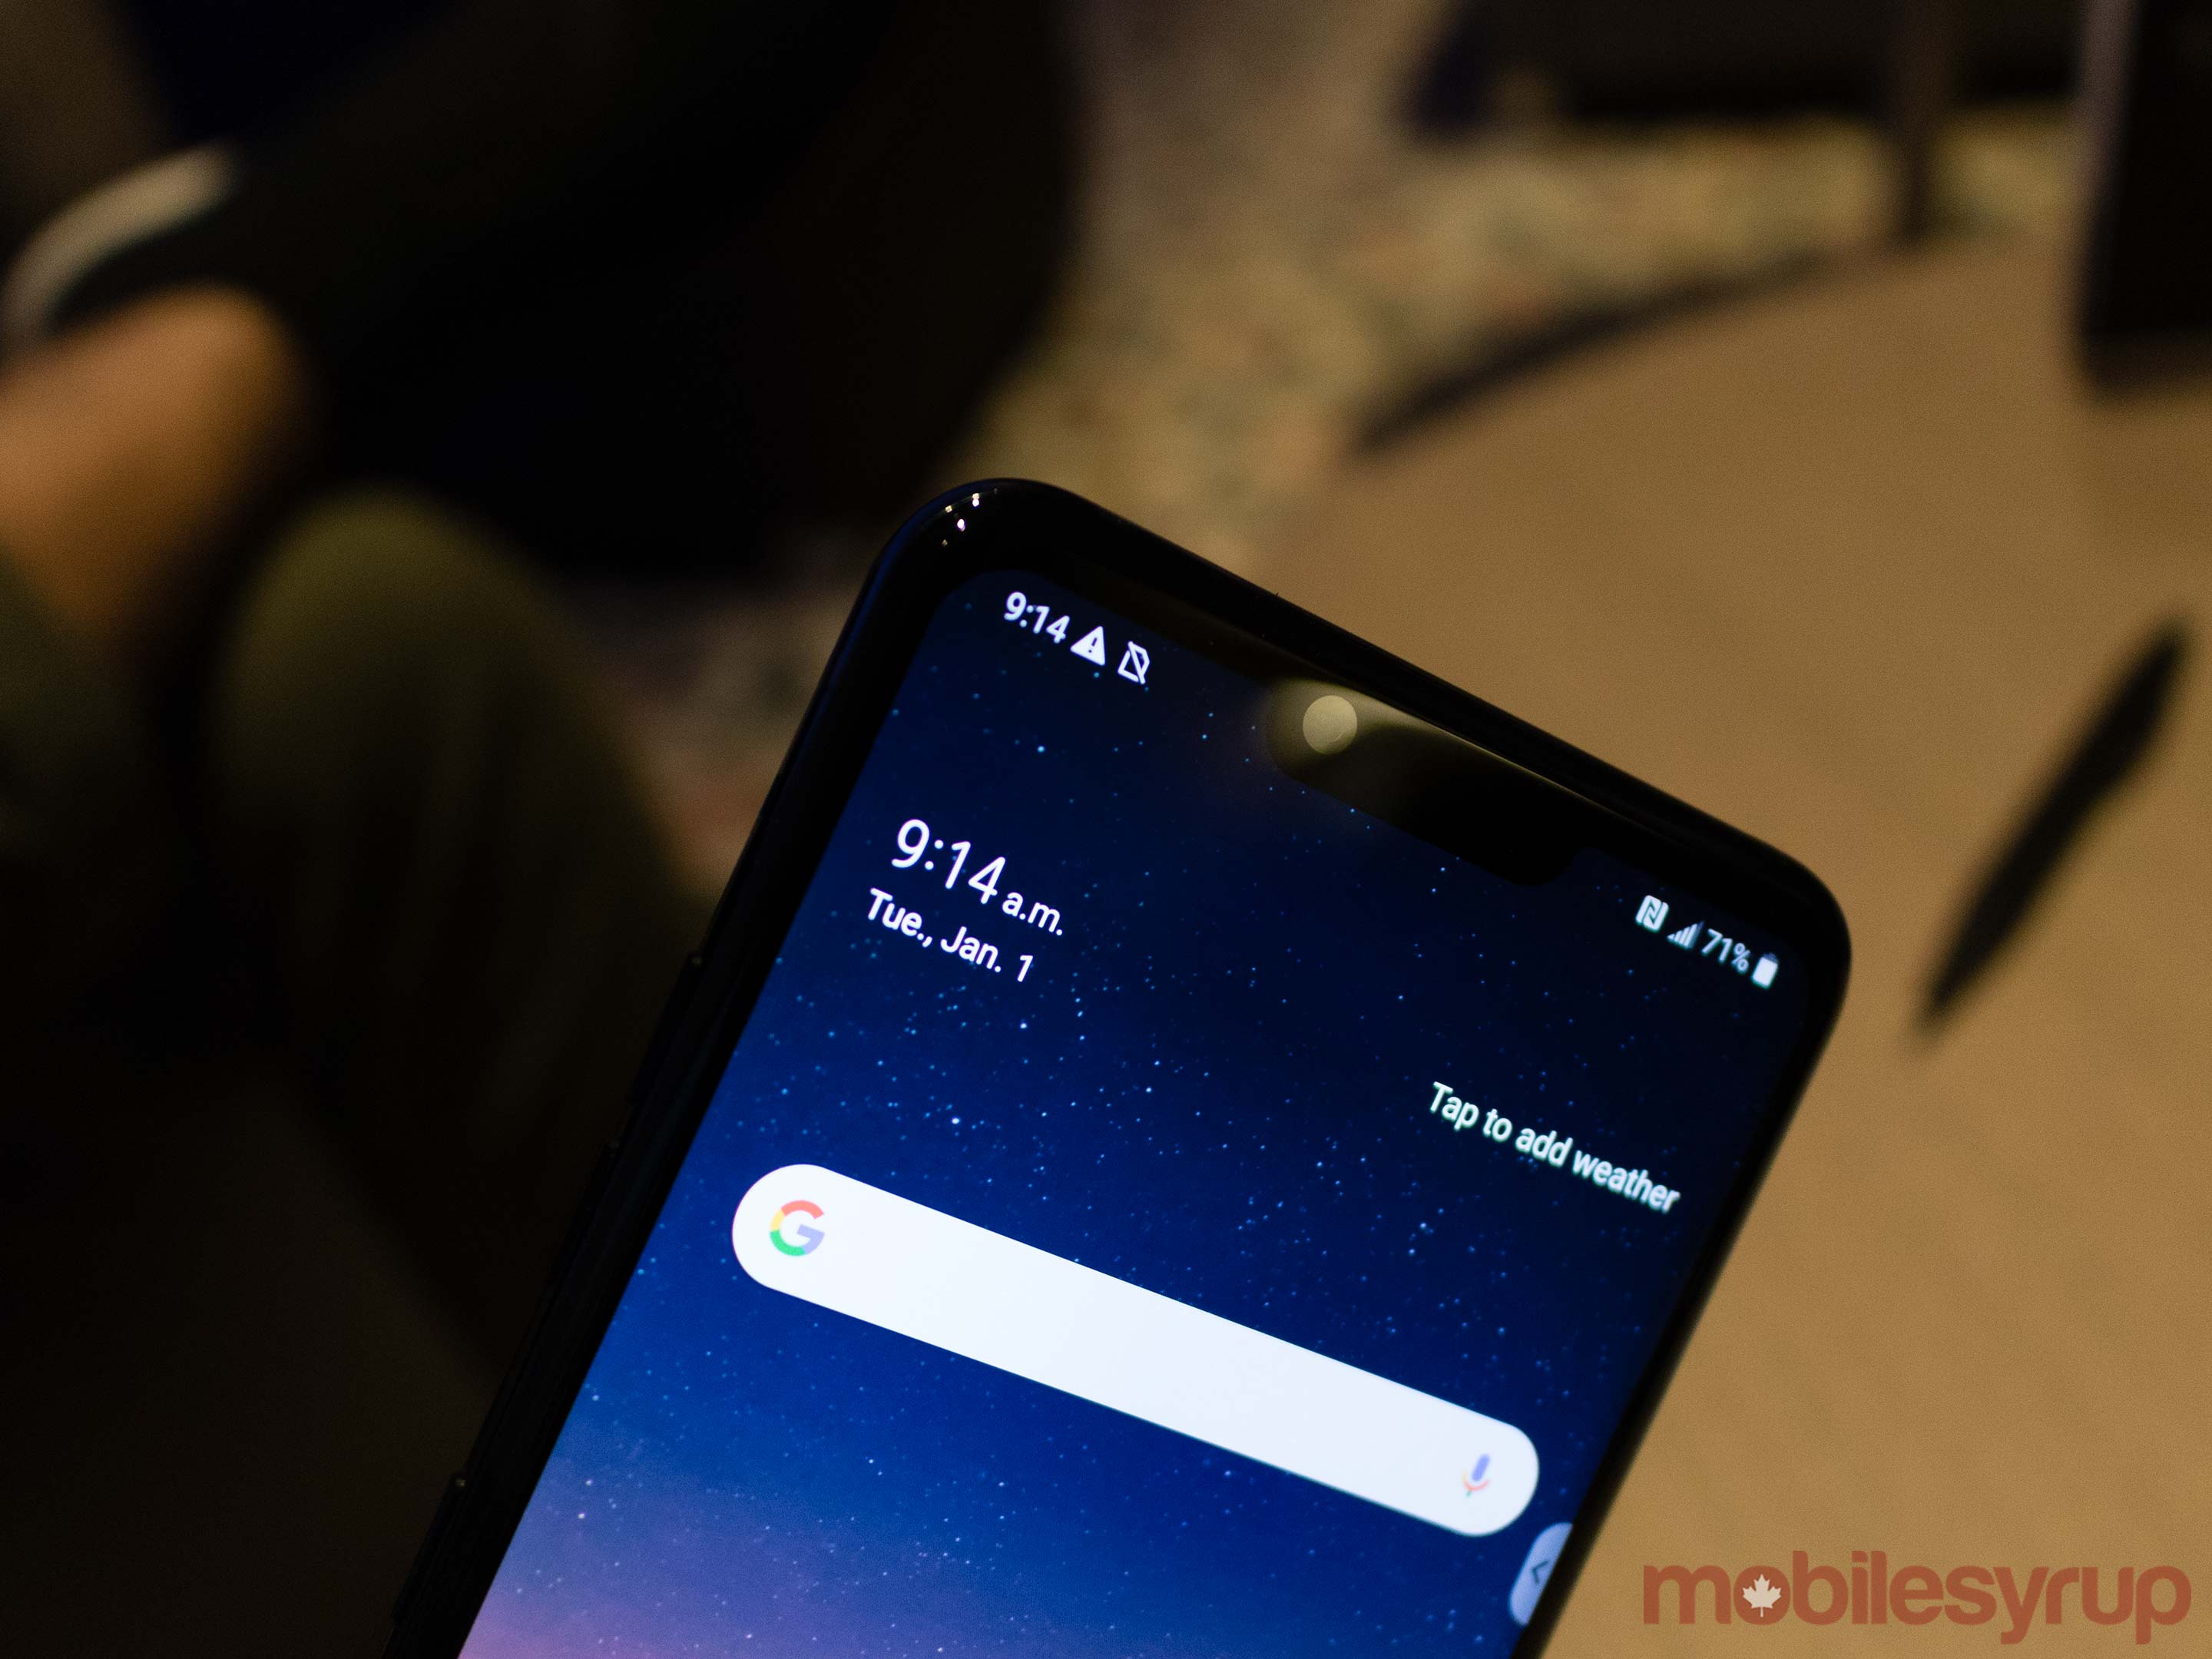 LG G8 ThinQ Hands-on: touching your phone is overrated